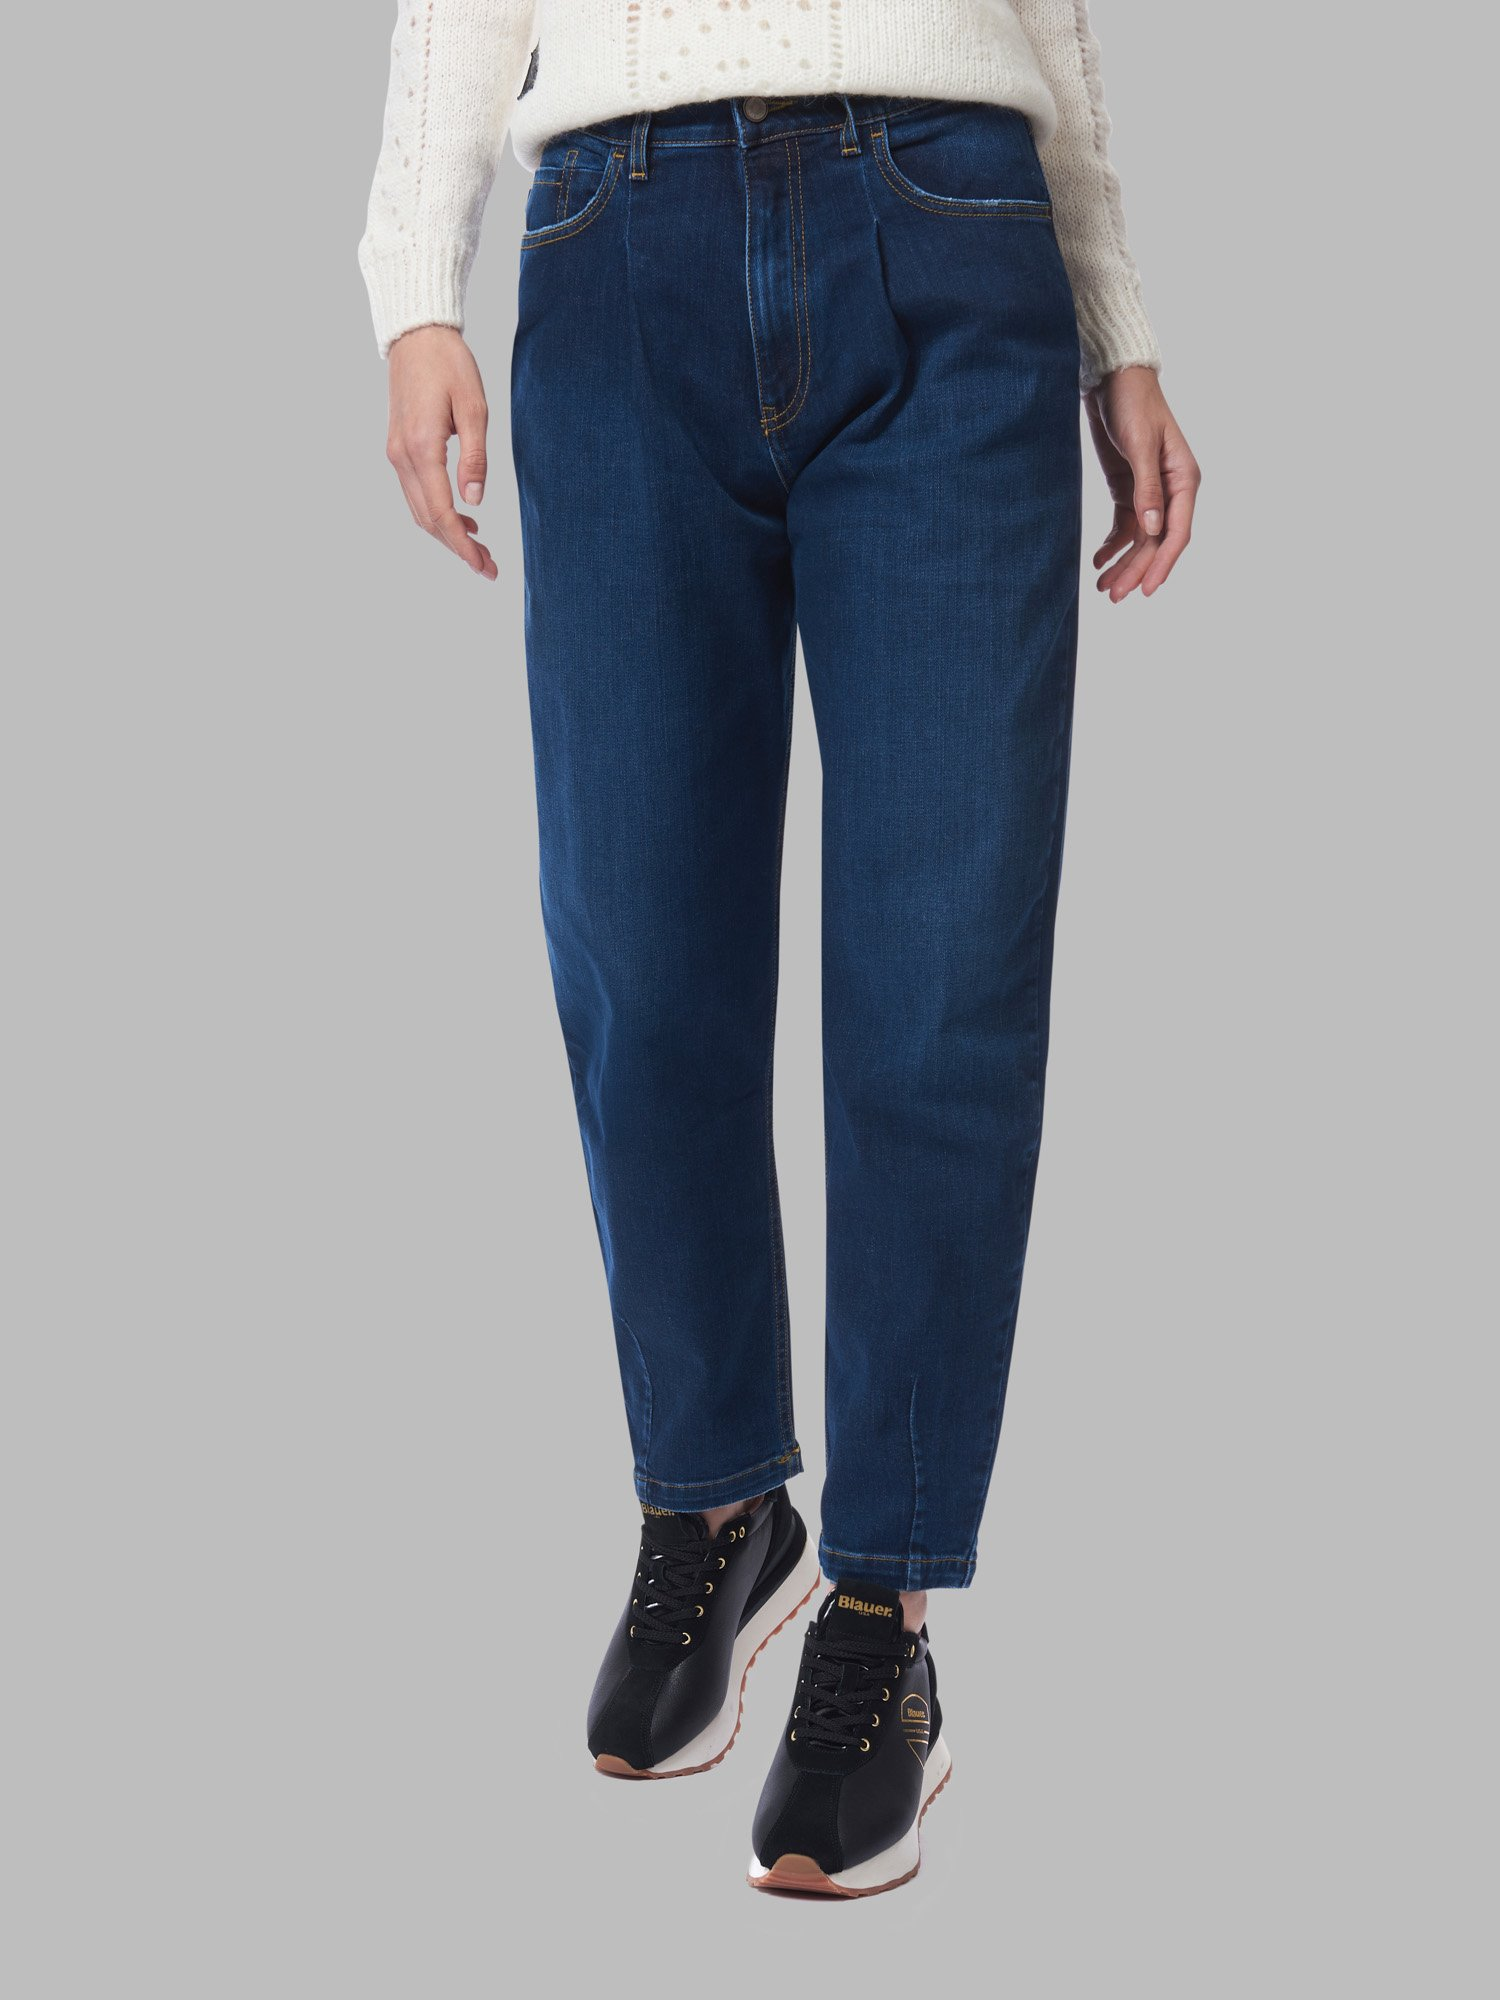 Blauer - JEANS CARROT FIT - Dusty Indaco - Blauer